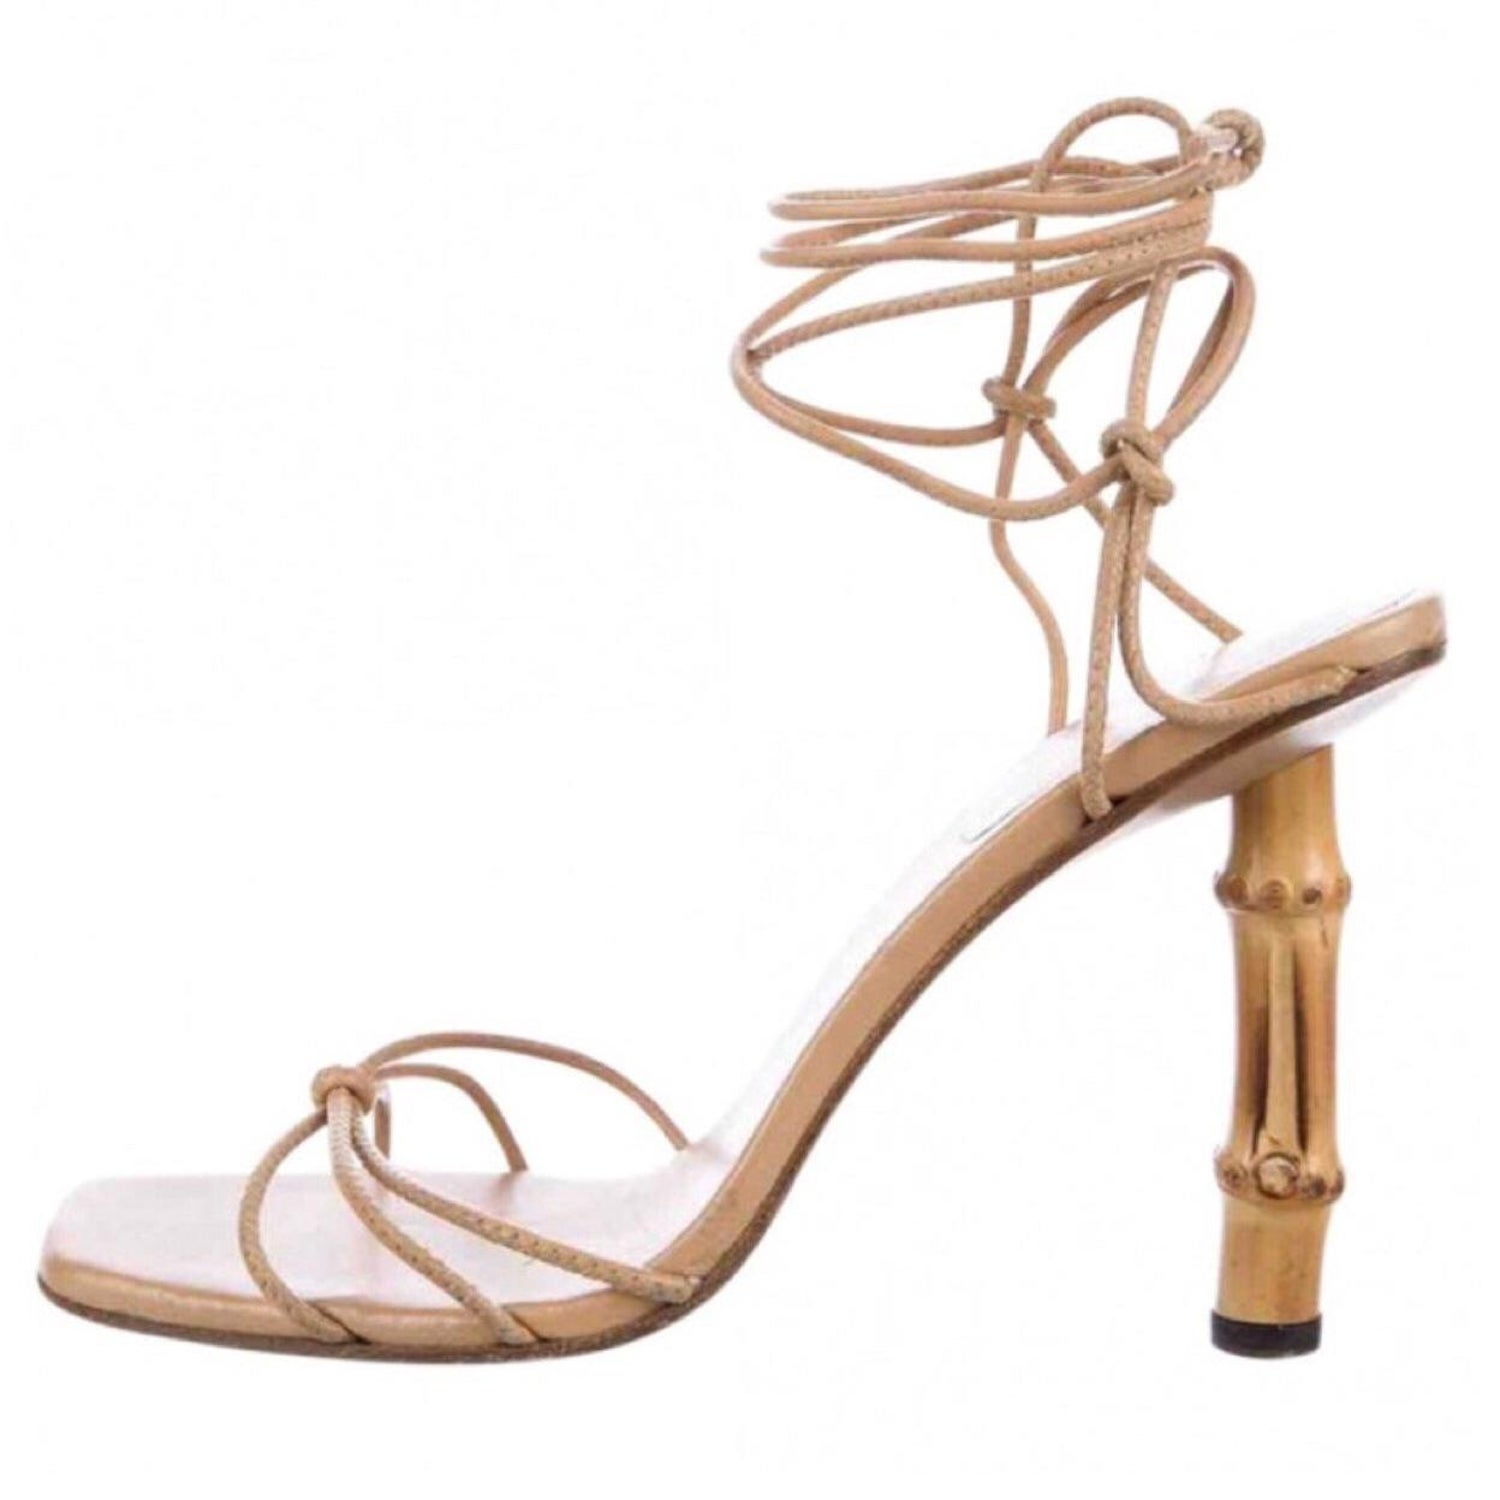 b1d2f731a4a Vintage Gucci Leather Lace Up Bamboo Heels Shoes at 1stdibs